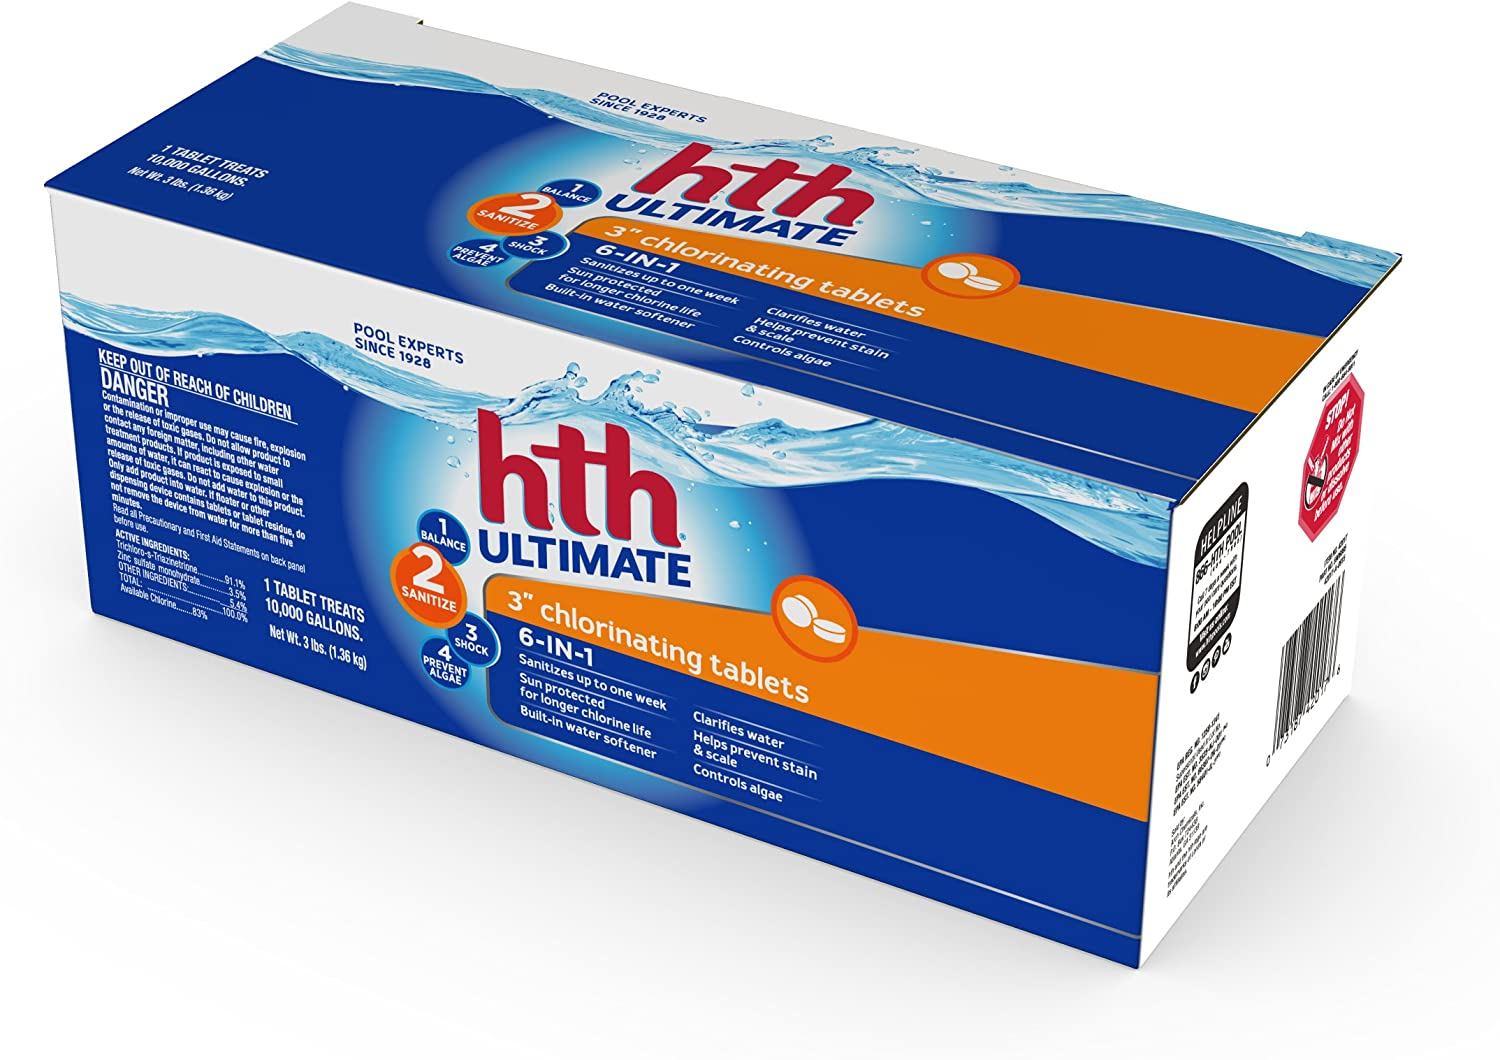 Max 87% OFF HTH 42017 Ultimate 3-inch Chlorinating Pool Selling Chl Tablets Swimming